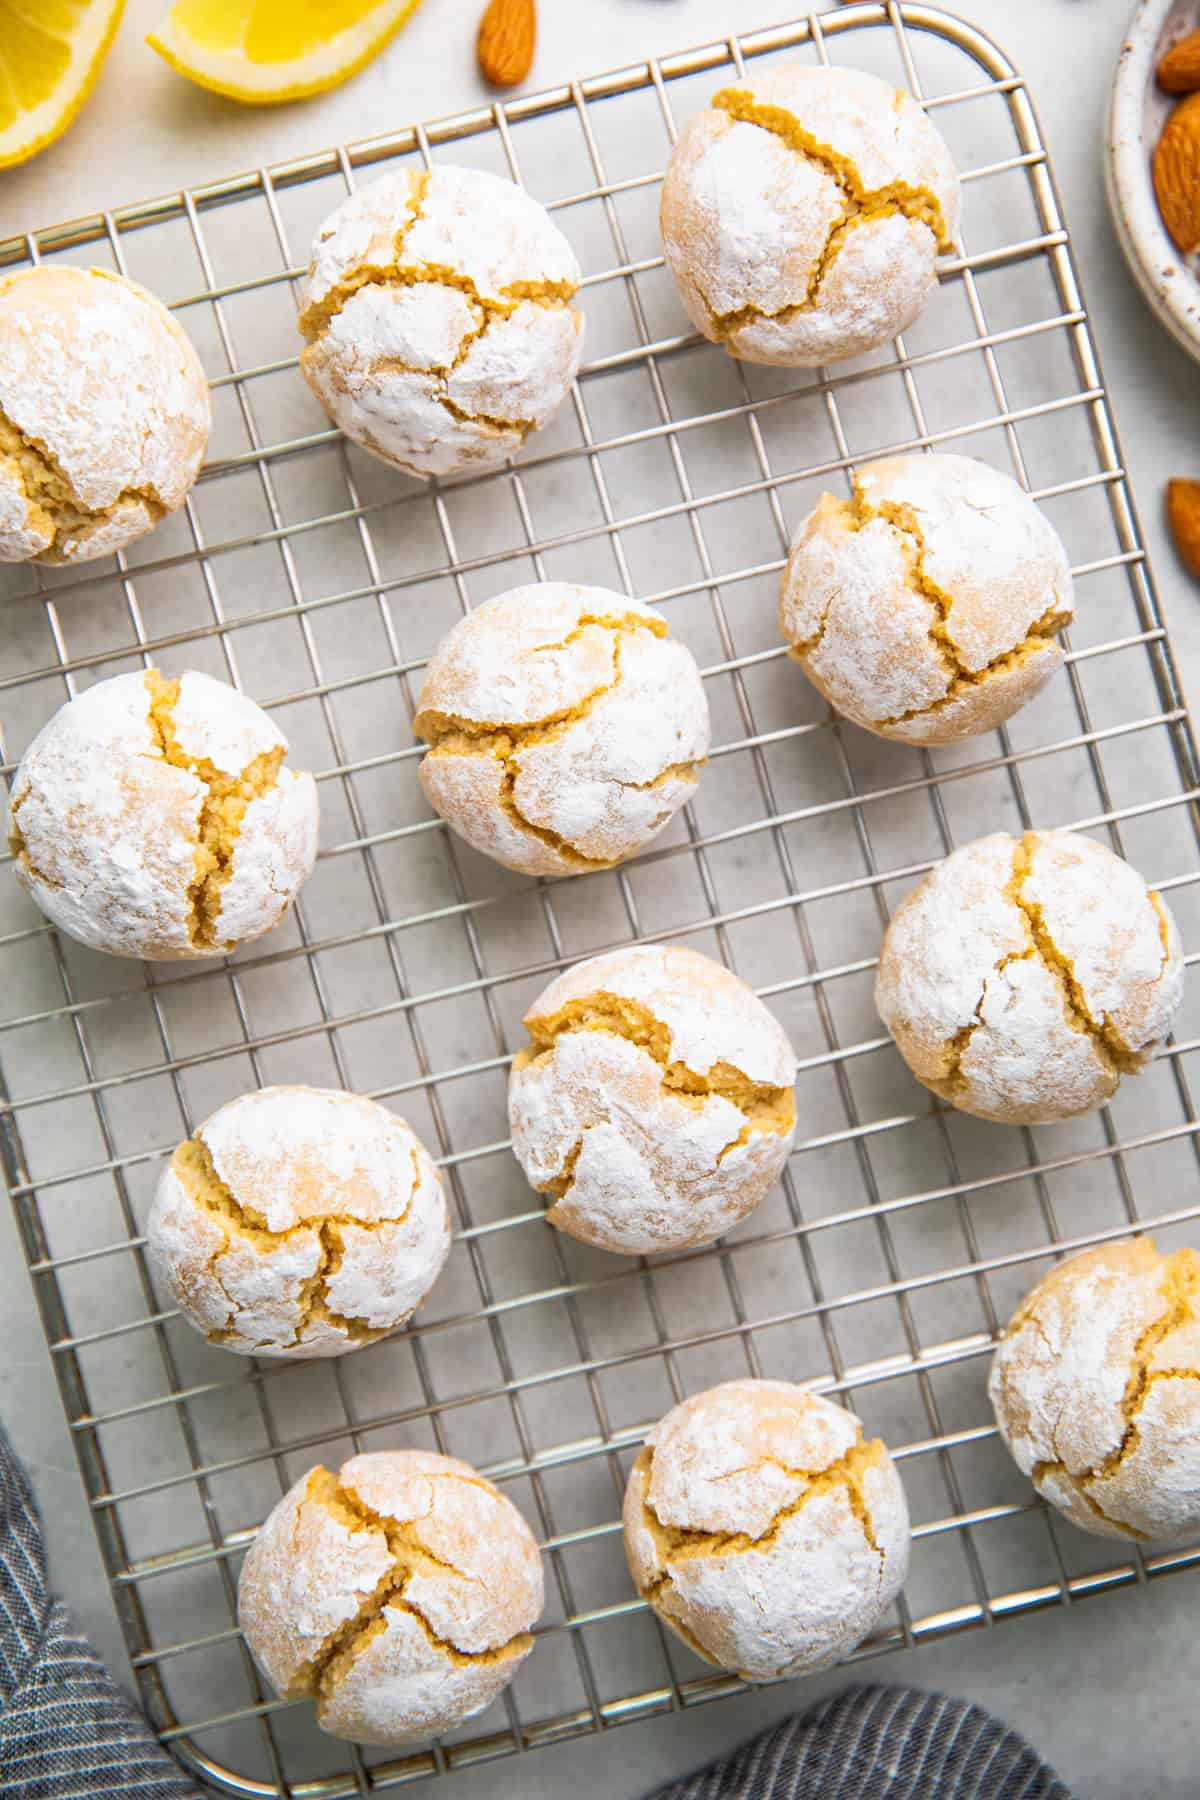 Crinkled amaretti cookies on a wire rack.